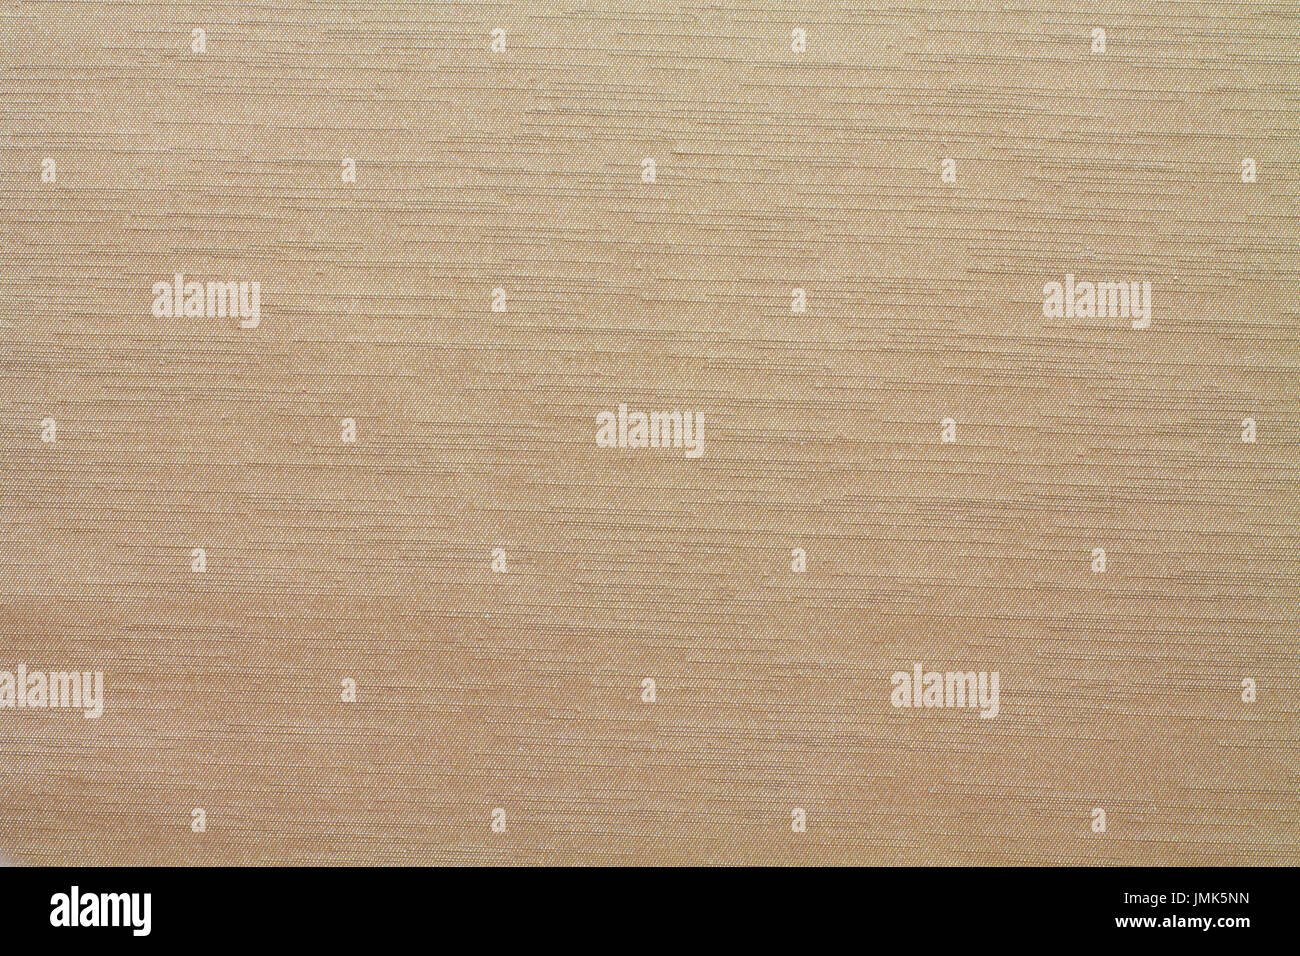 Texture of white synthetic fabric - Stock Image